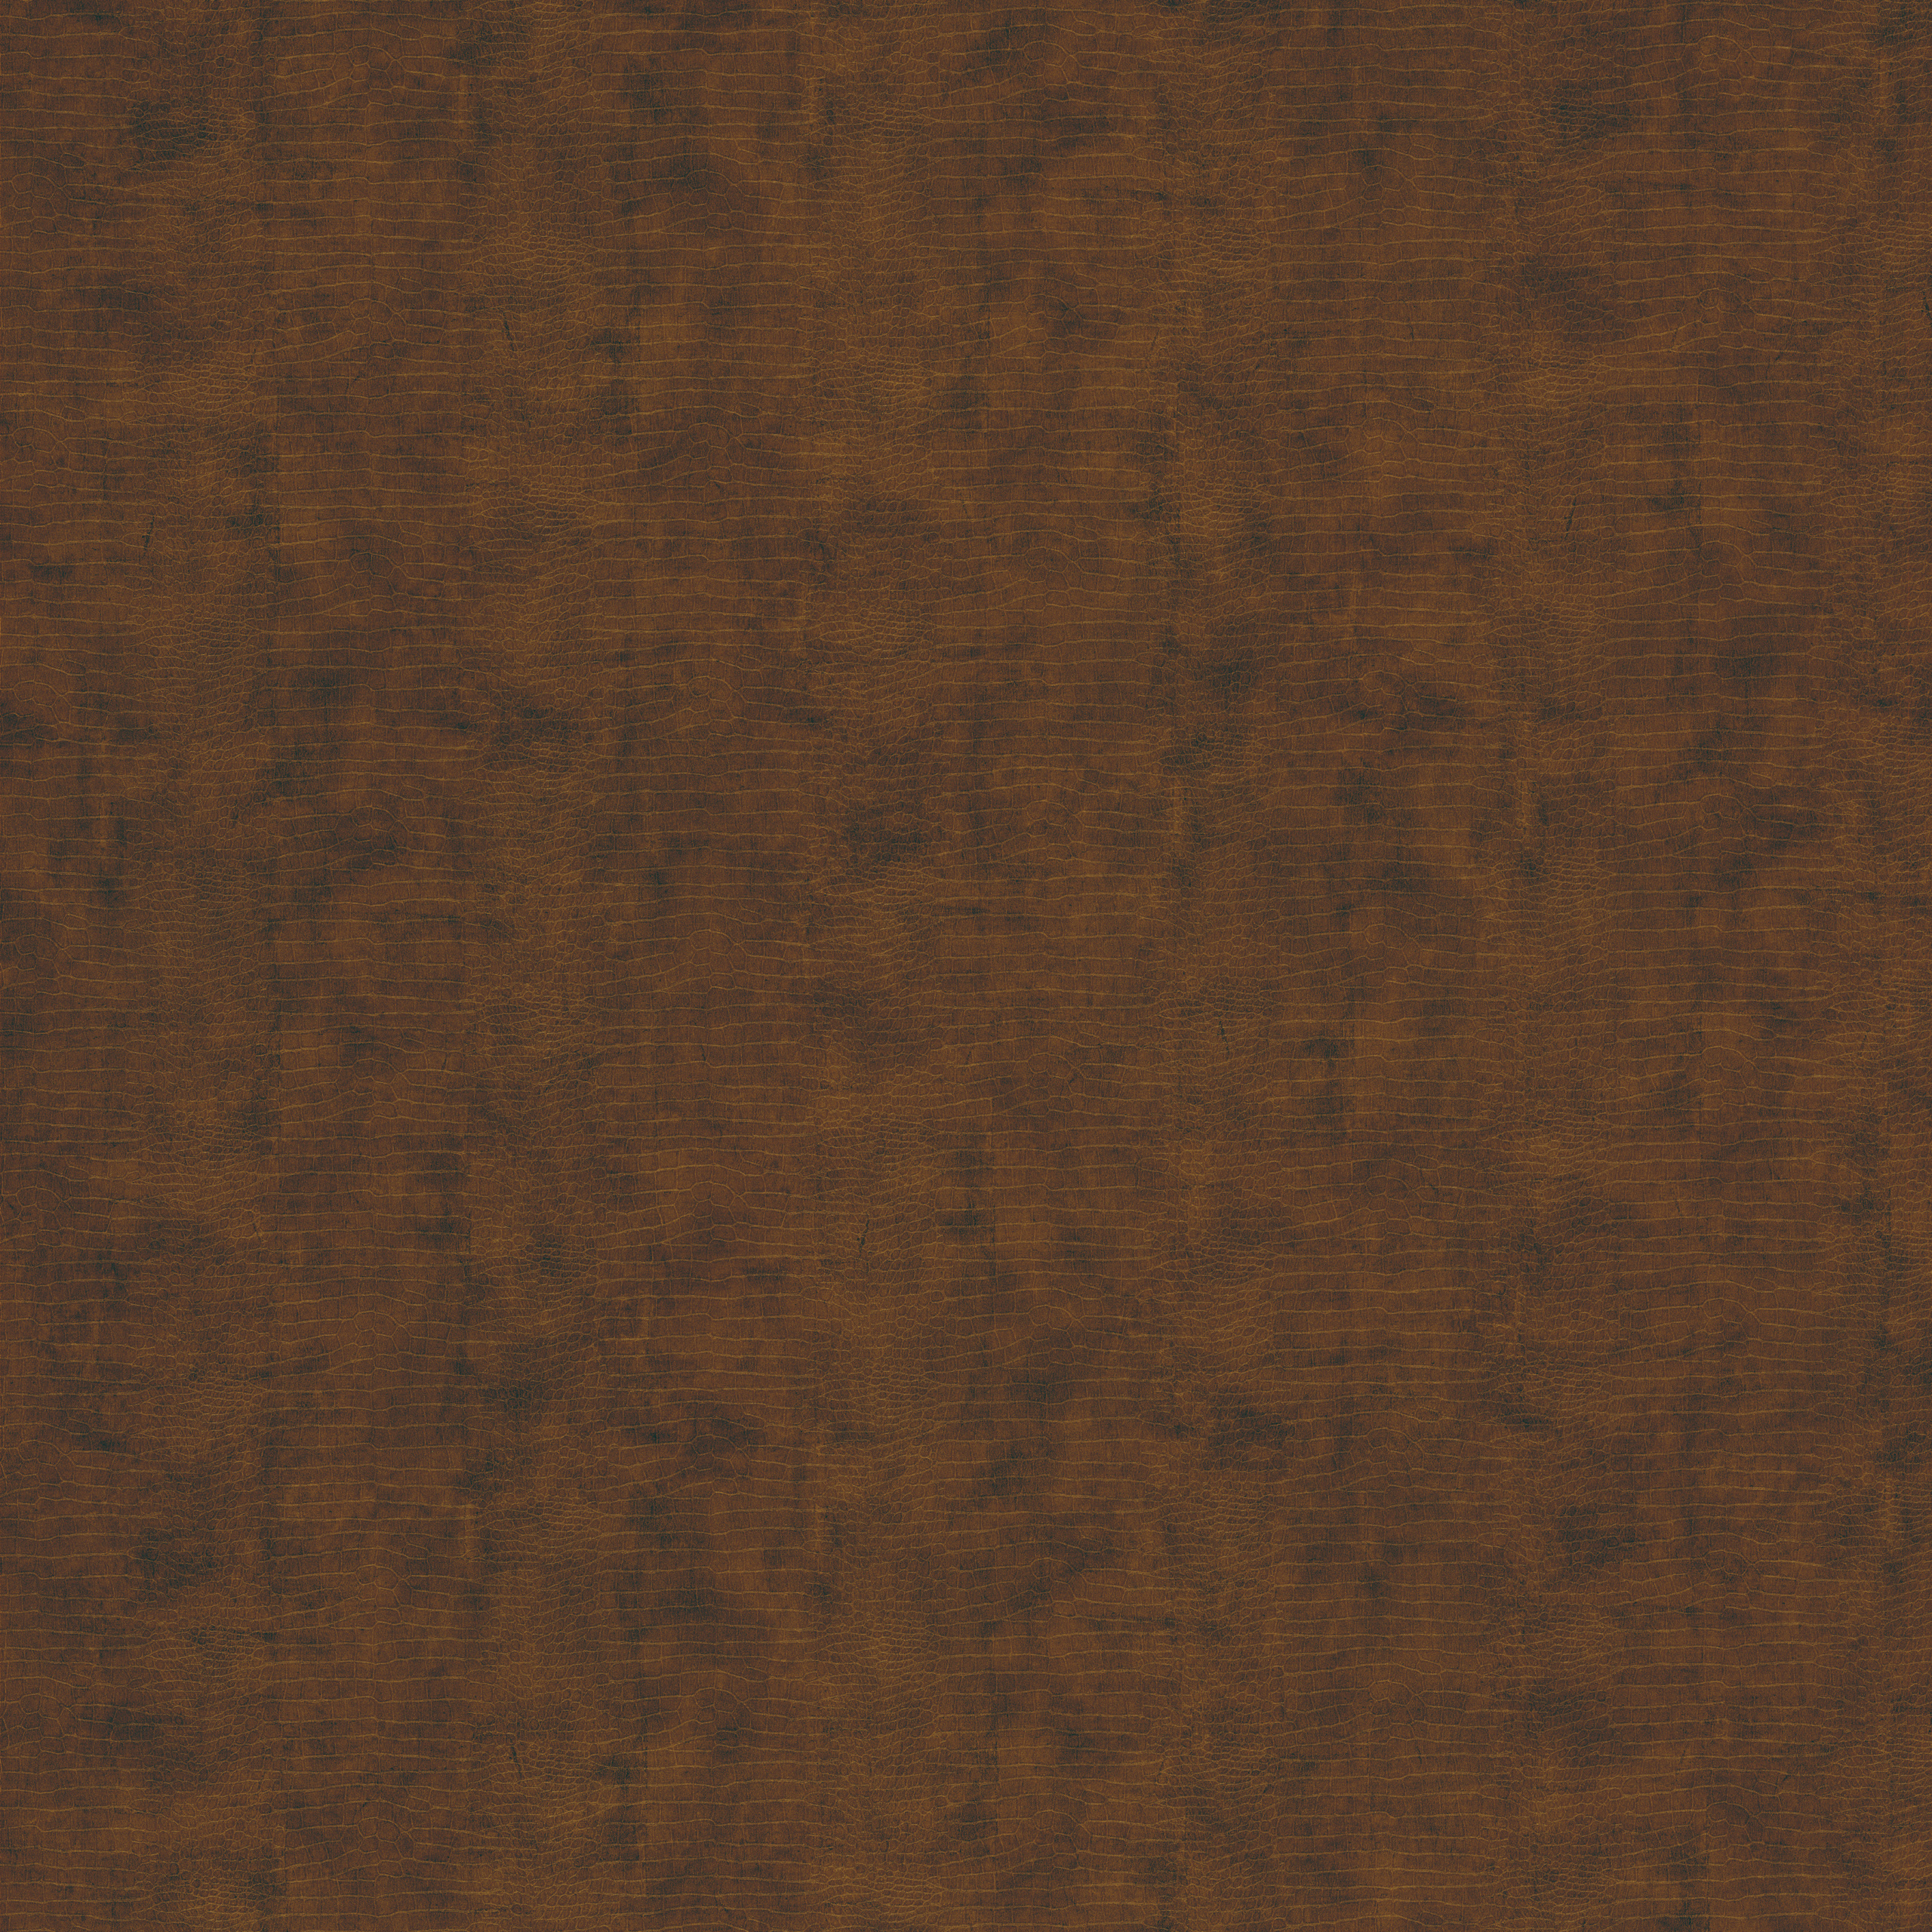 NG17 BRONZED LEATHER